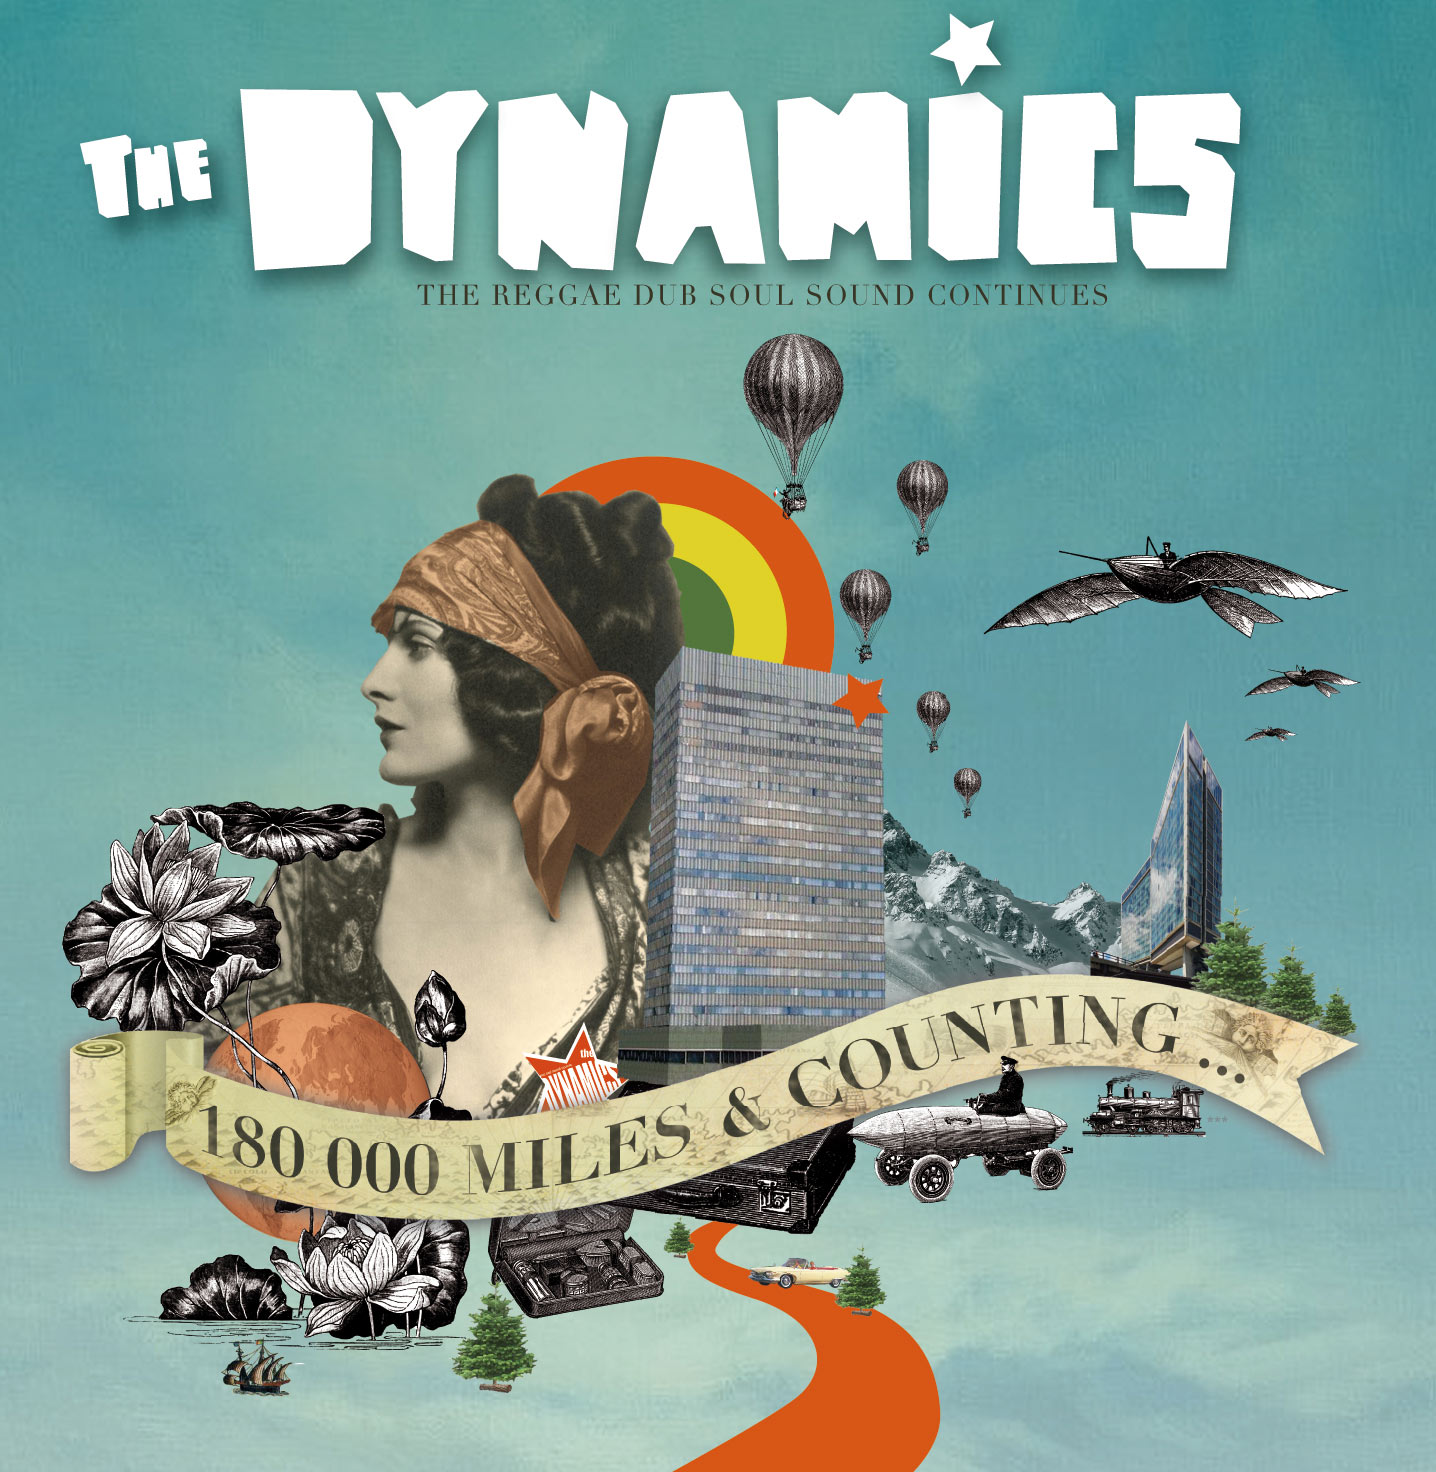 THE DYNAMICS NEW ALBUM